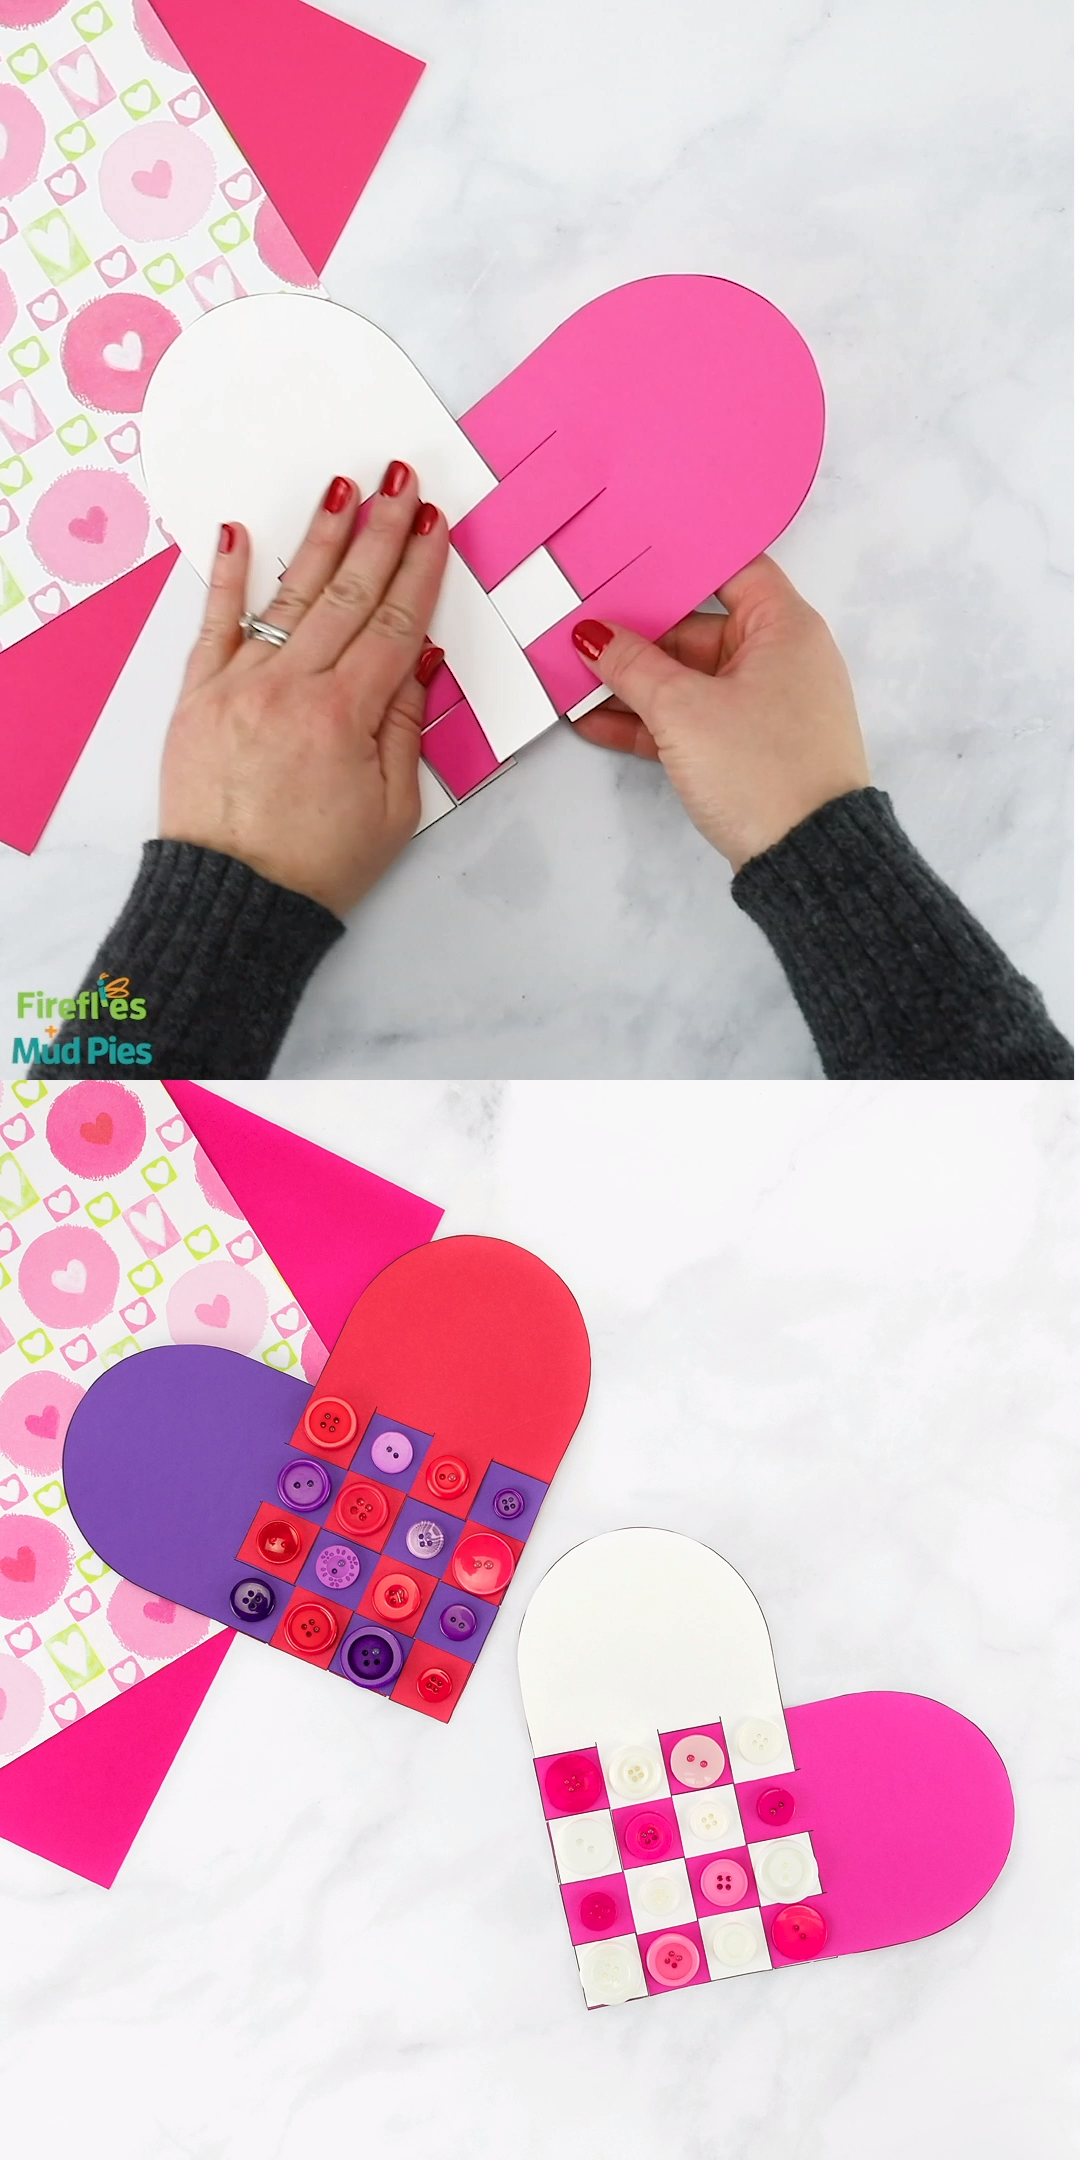 Reminiscent of Scandinavian Woven Hearts, this Woven Heart Craft is an easy and fun Valentine's Day craft for kids of all ages to make at school or home. #heartcrafts #valentinesday